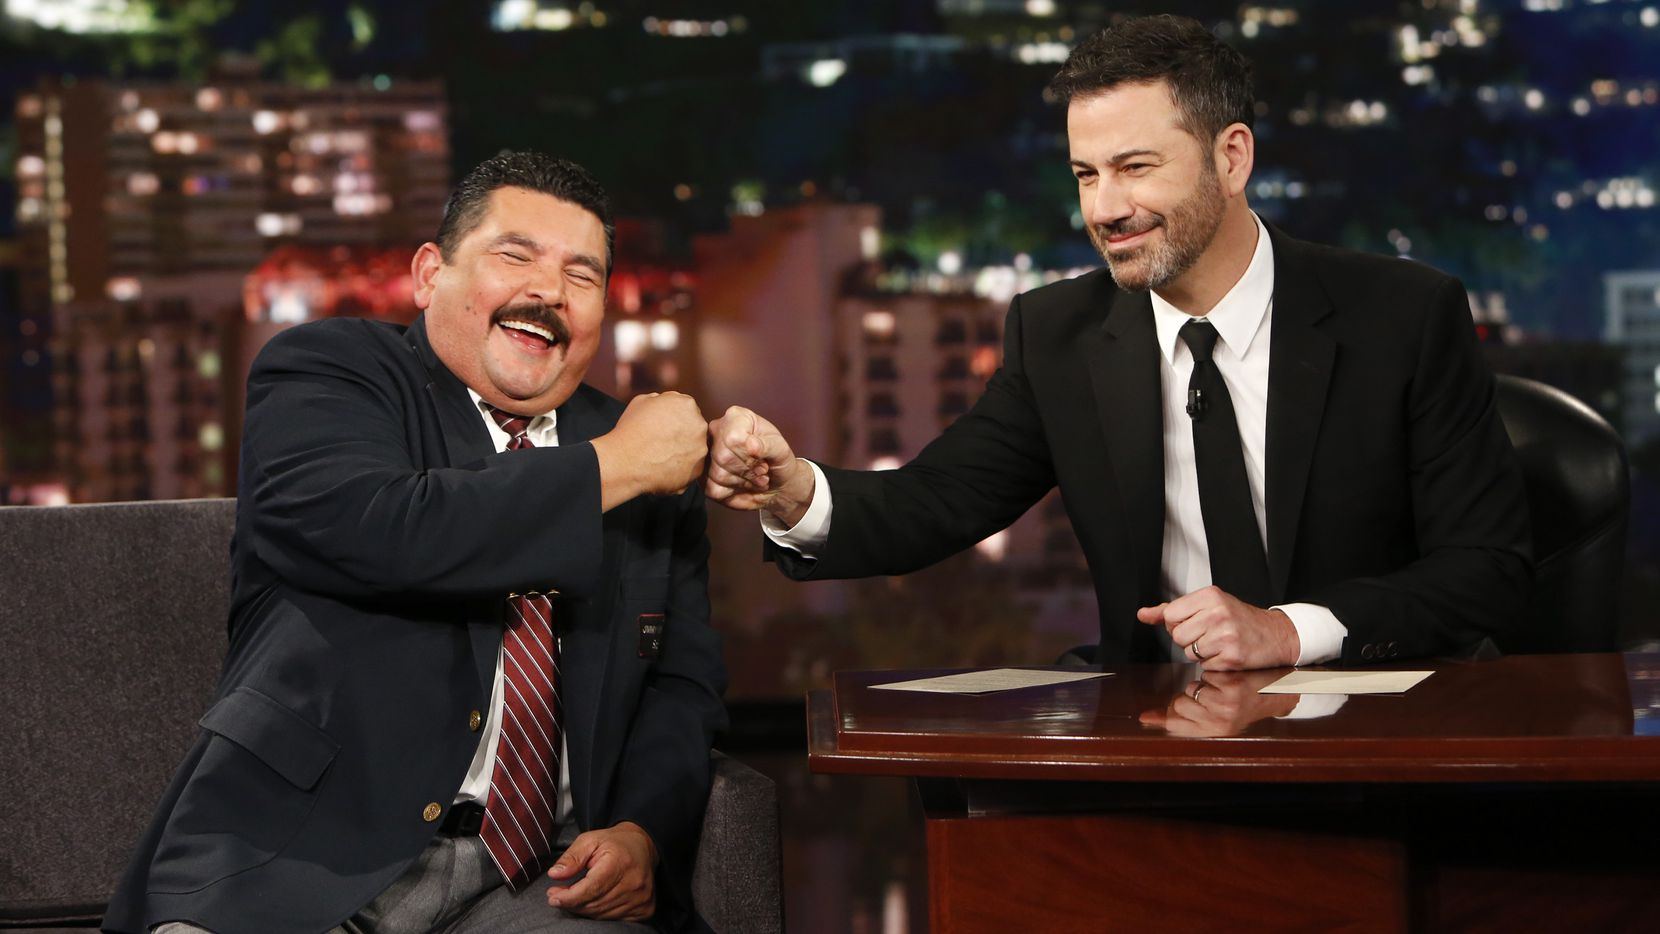 Guillermo Rodriguez is Jimmy Kimmel's sidekick on his late-night TV show on ABC. Guillermo is traveling to Dallas for a one-night-only stop at Mariano's Hacienda in Dallas on Oct. 14, 2019.